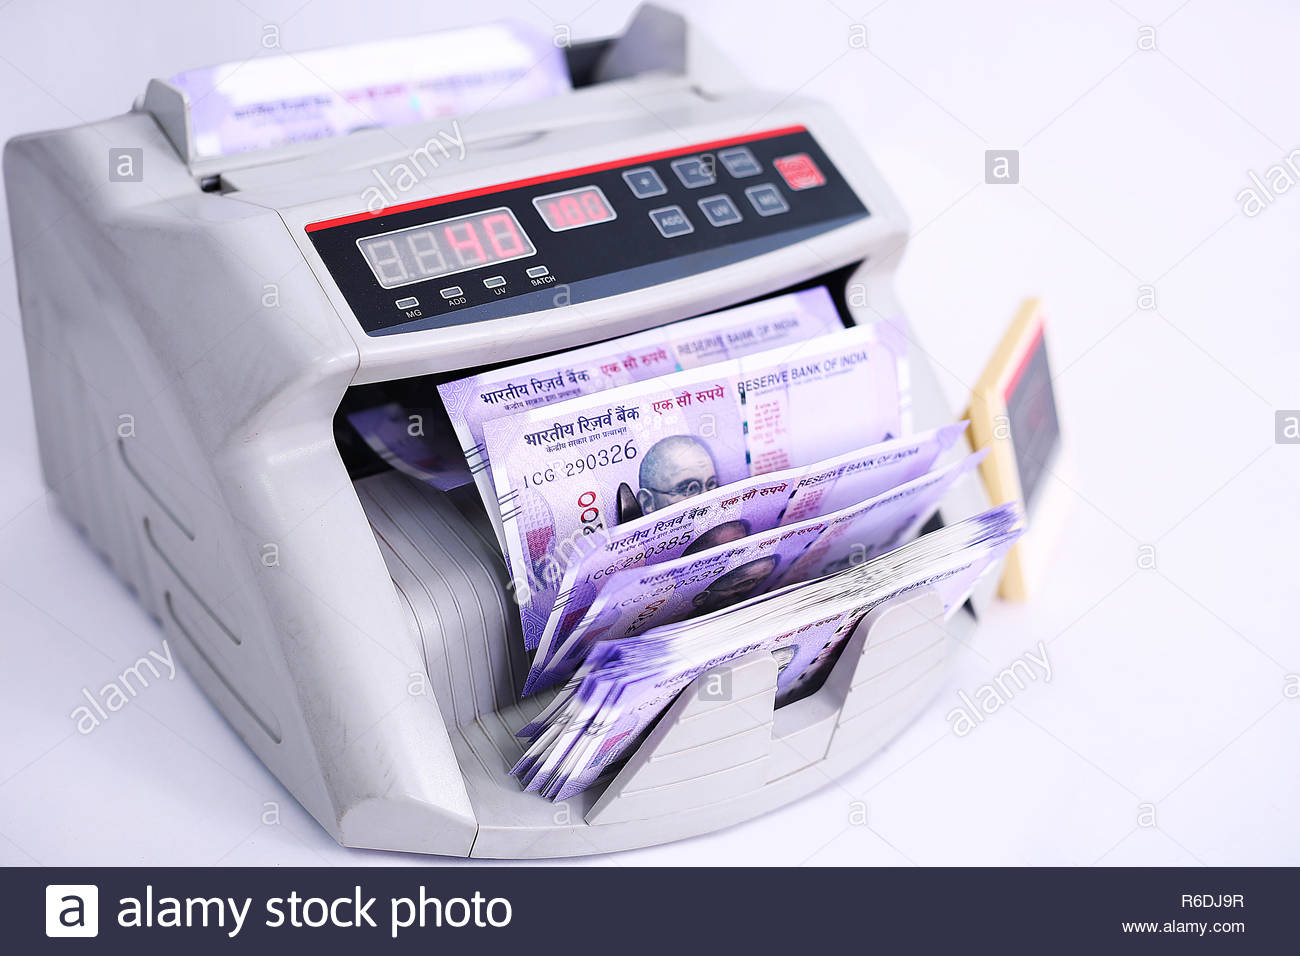 Counting currency in the money counting machine Isolated on the 1300x956